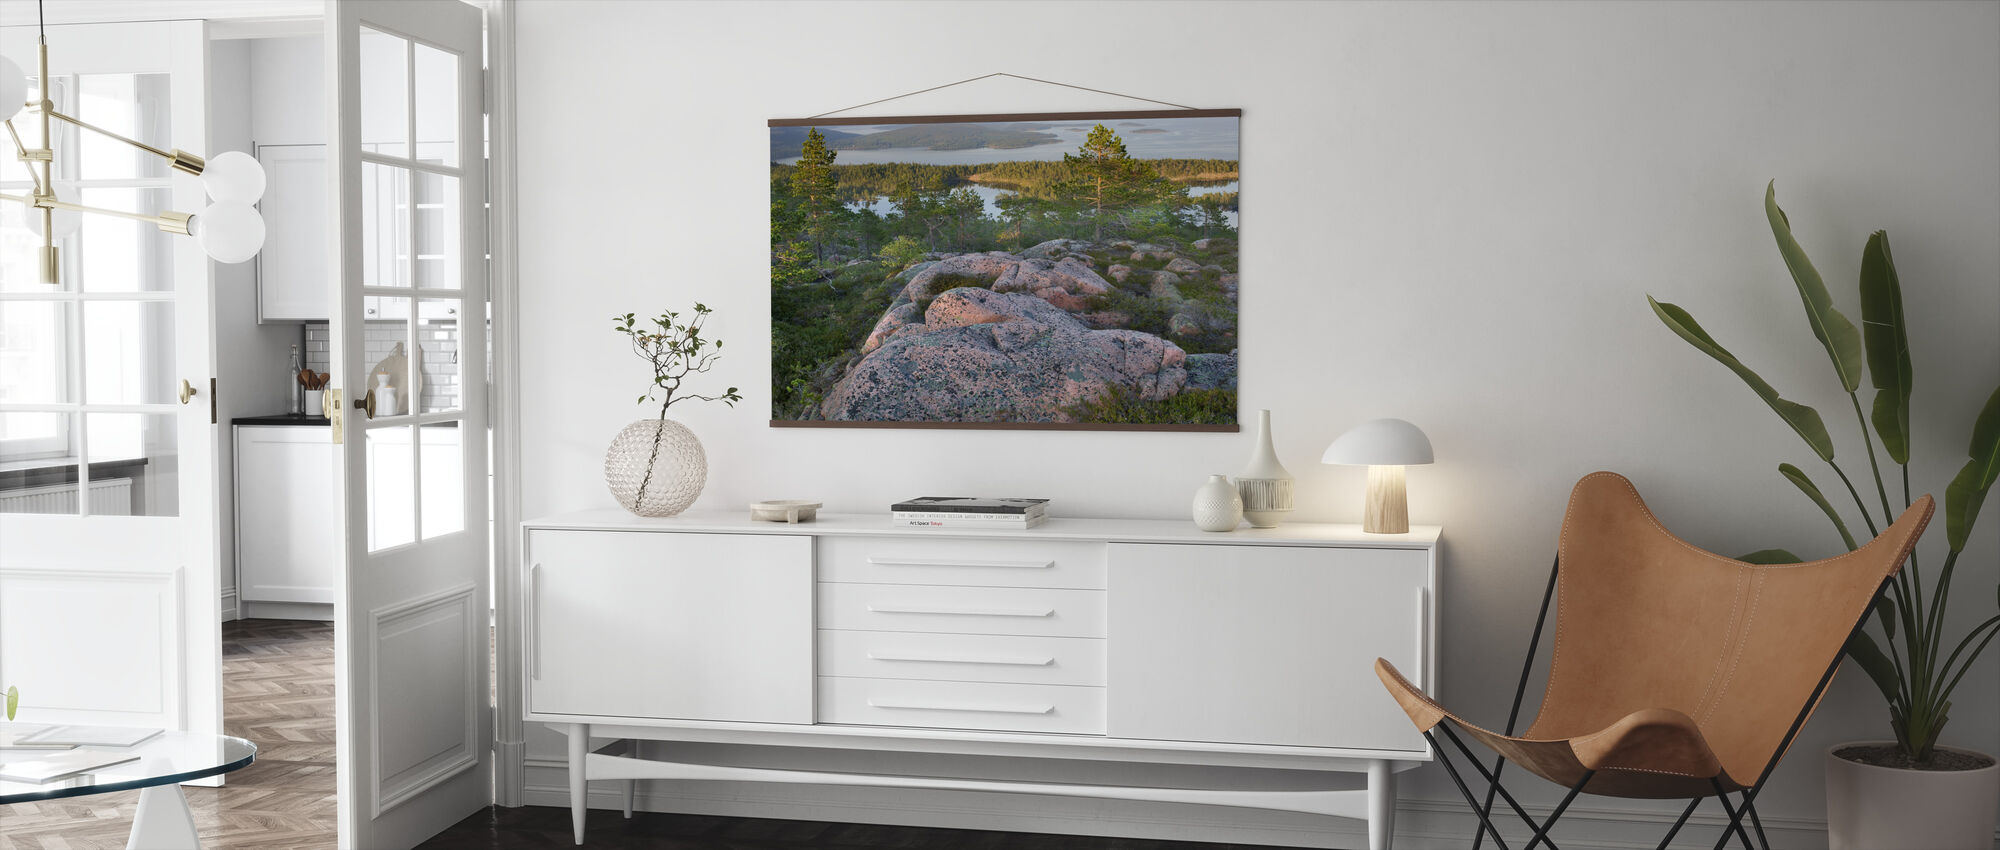 Skuleskogen National Park, Sweden - Poster - Living Room